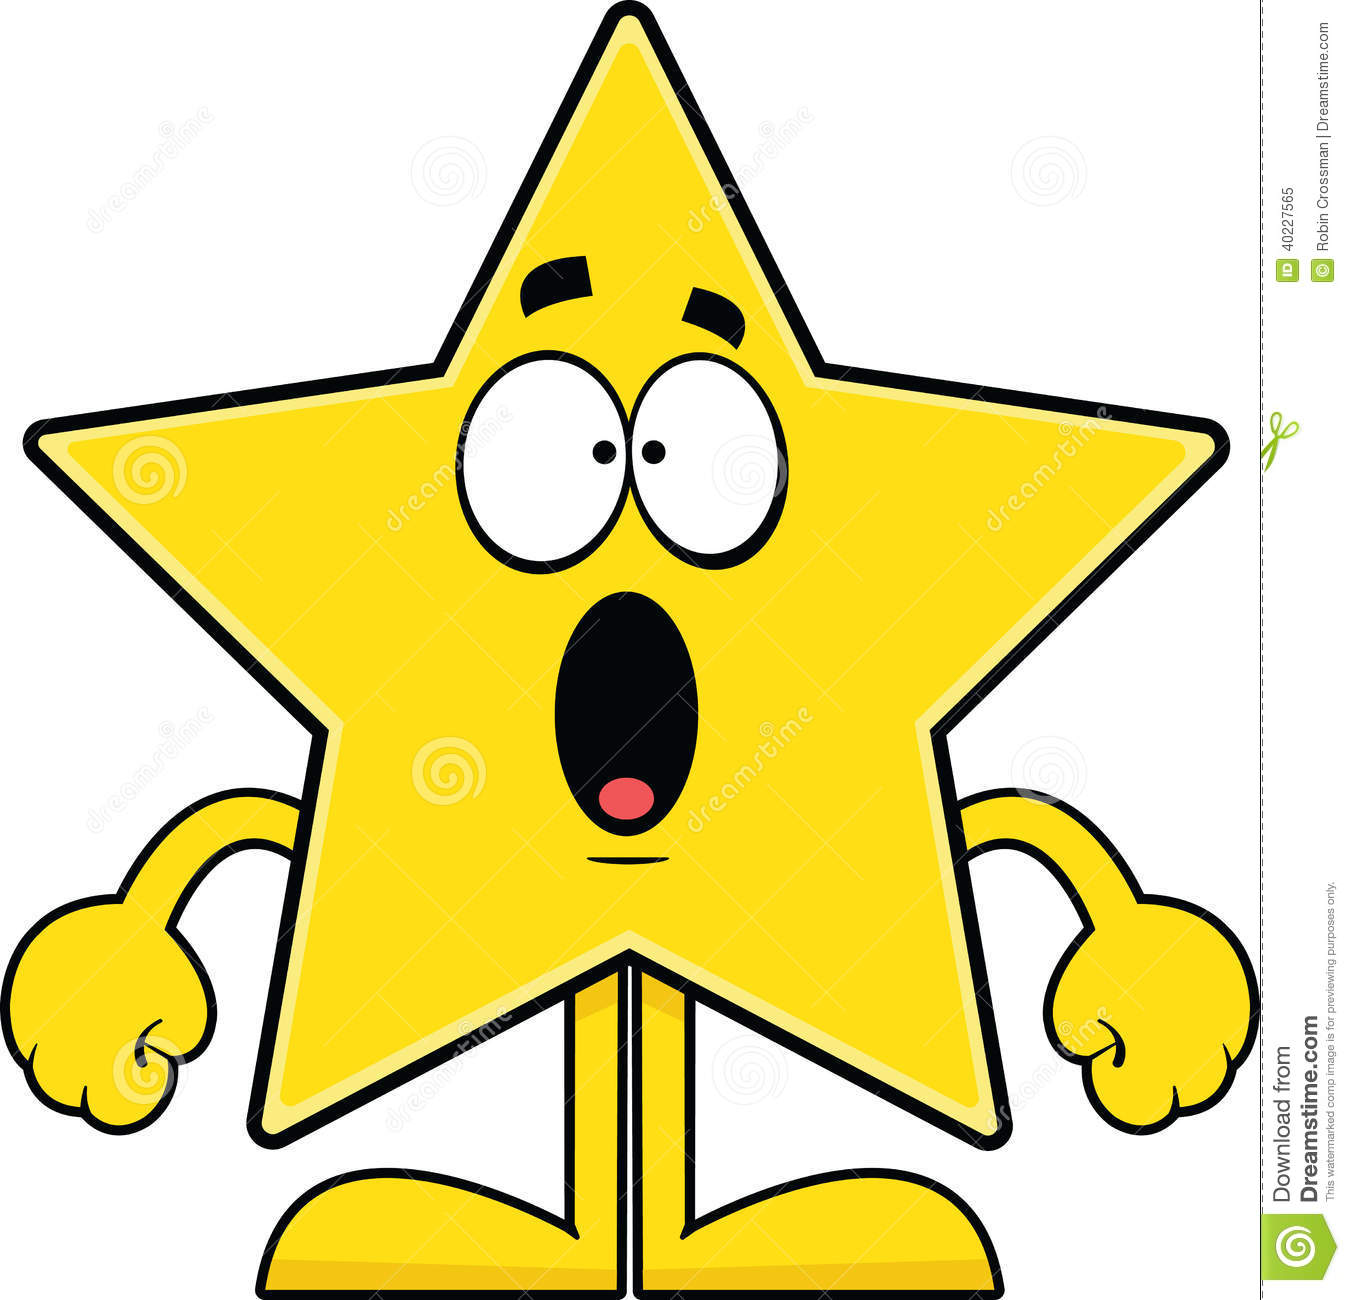 Cartoon illustration of a star with a surprised expression.